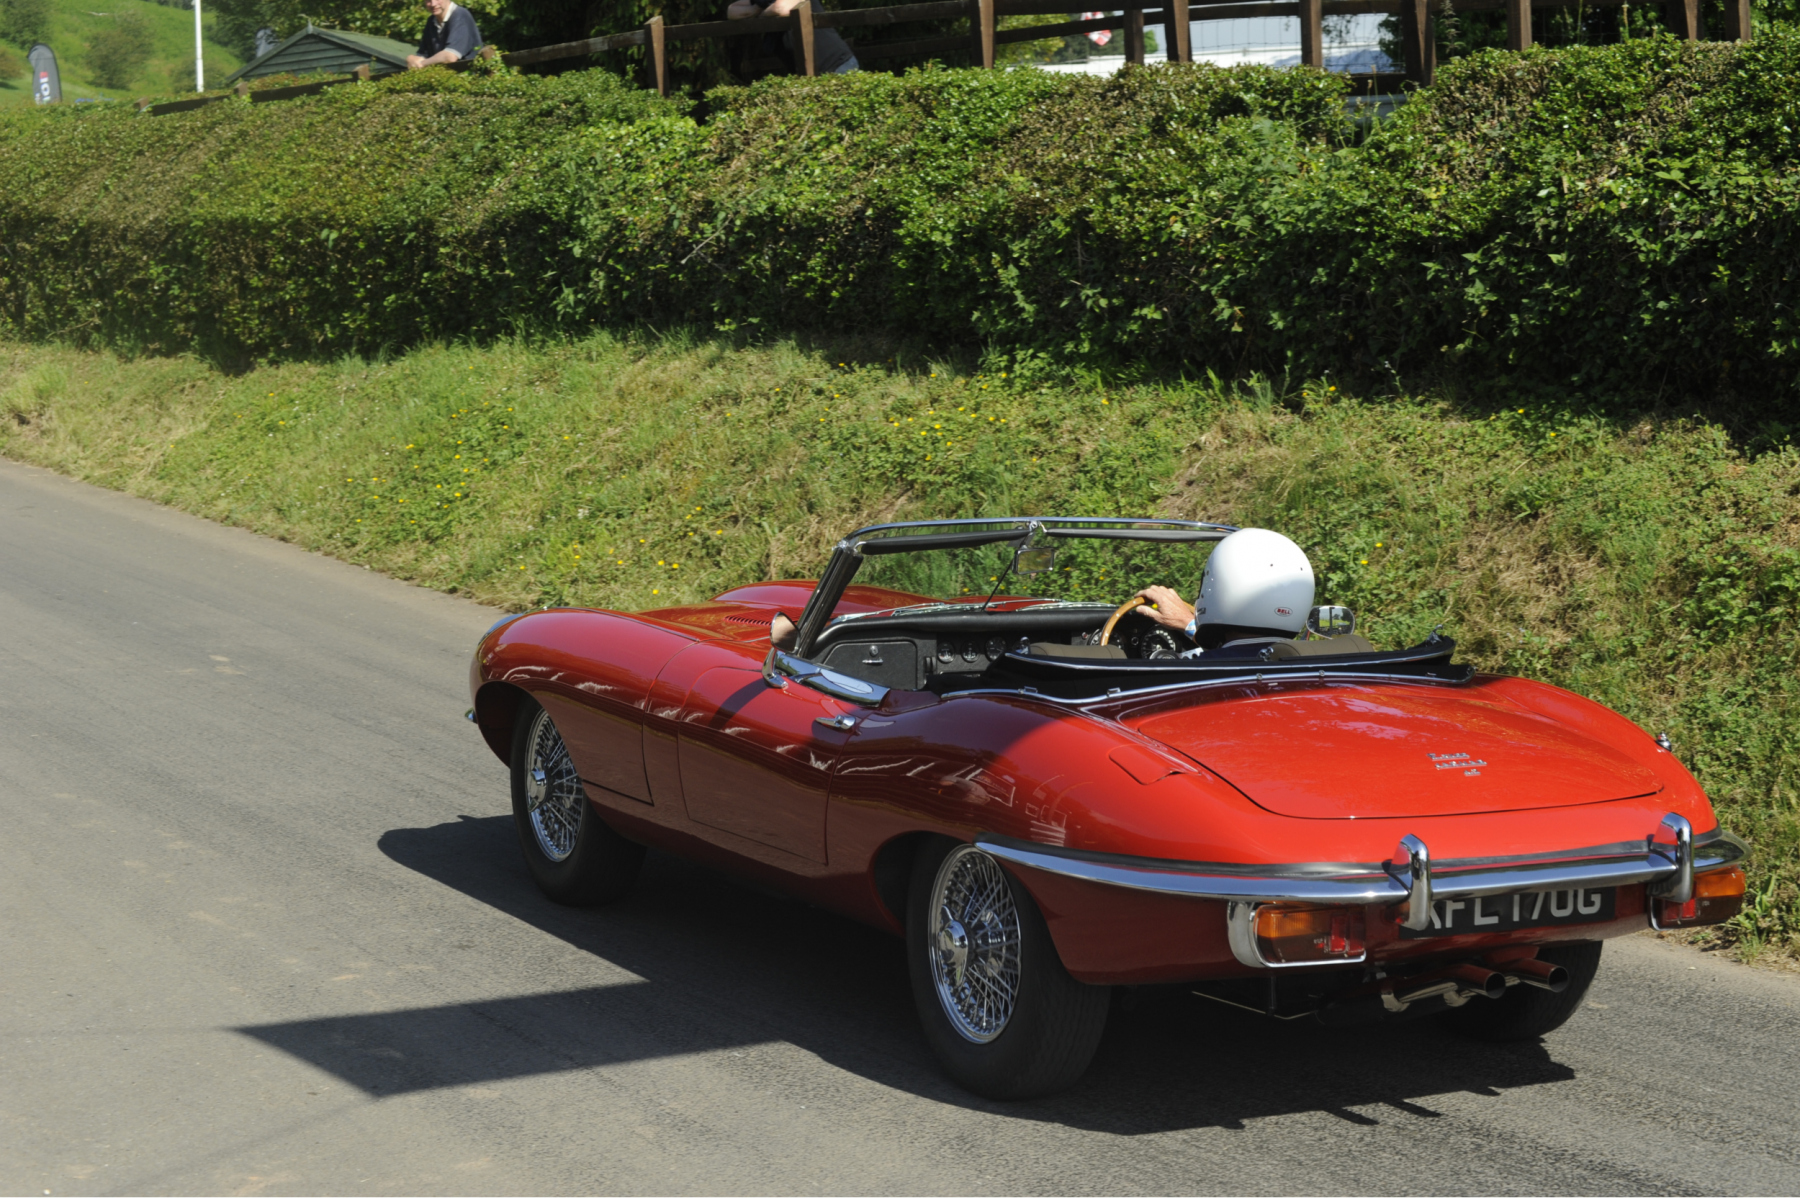 E-type-60-Saturday-photo-by-Abigail-Humphries-33